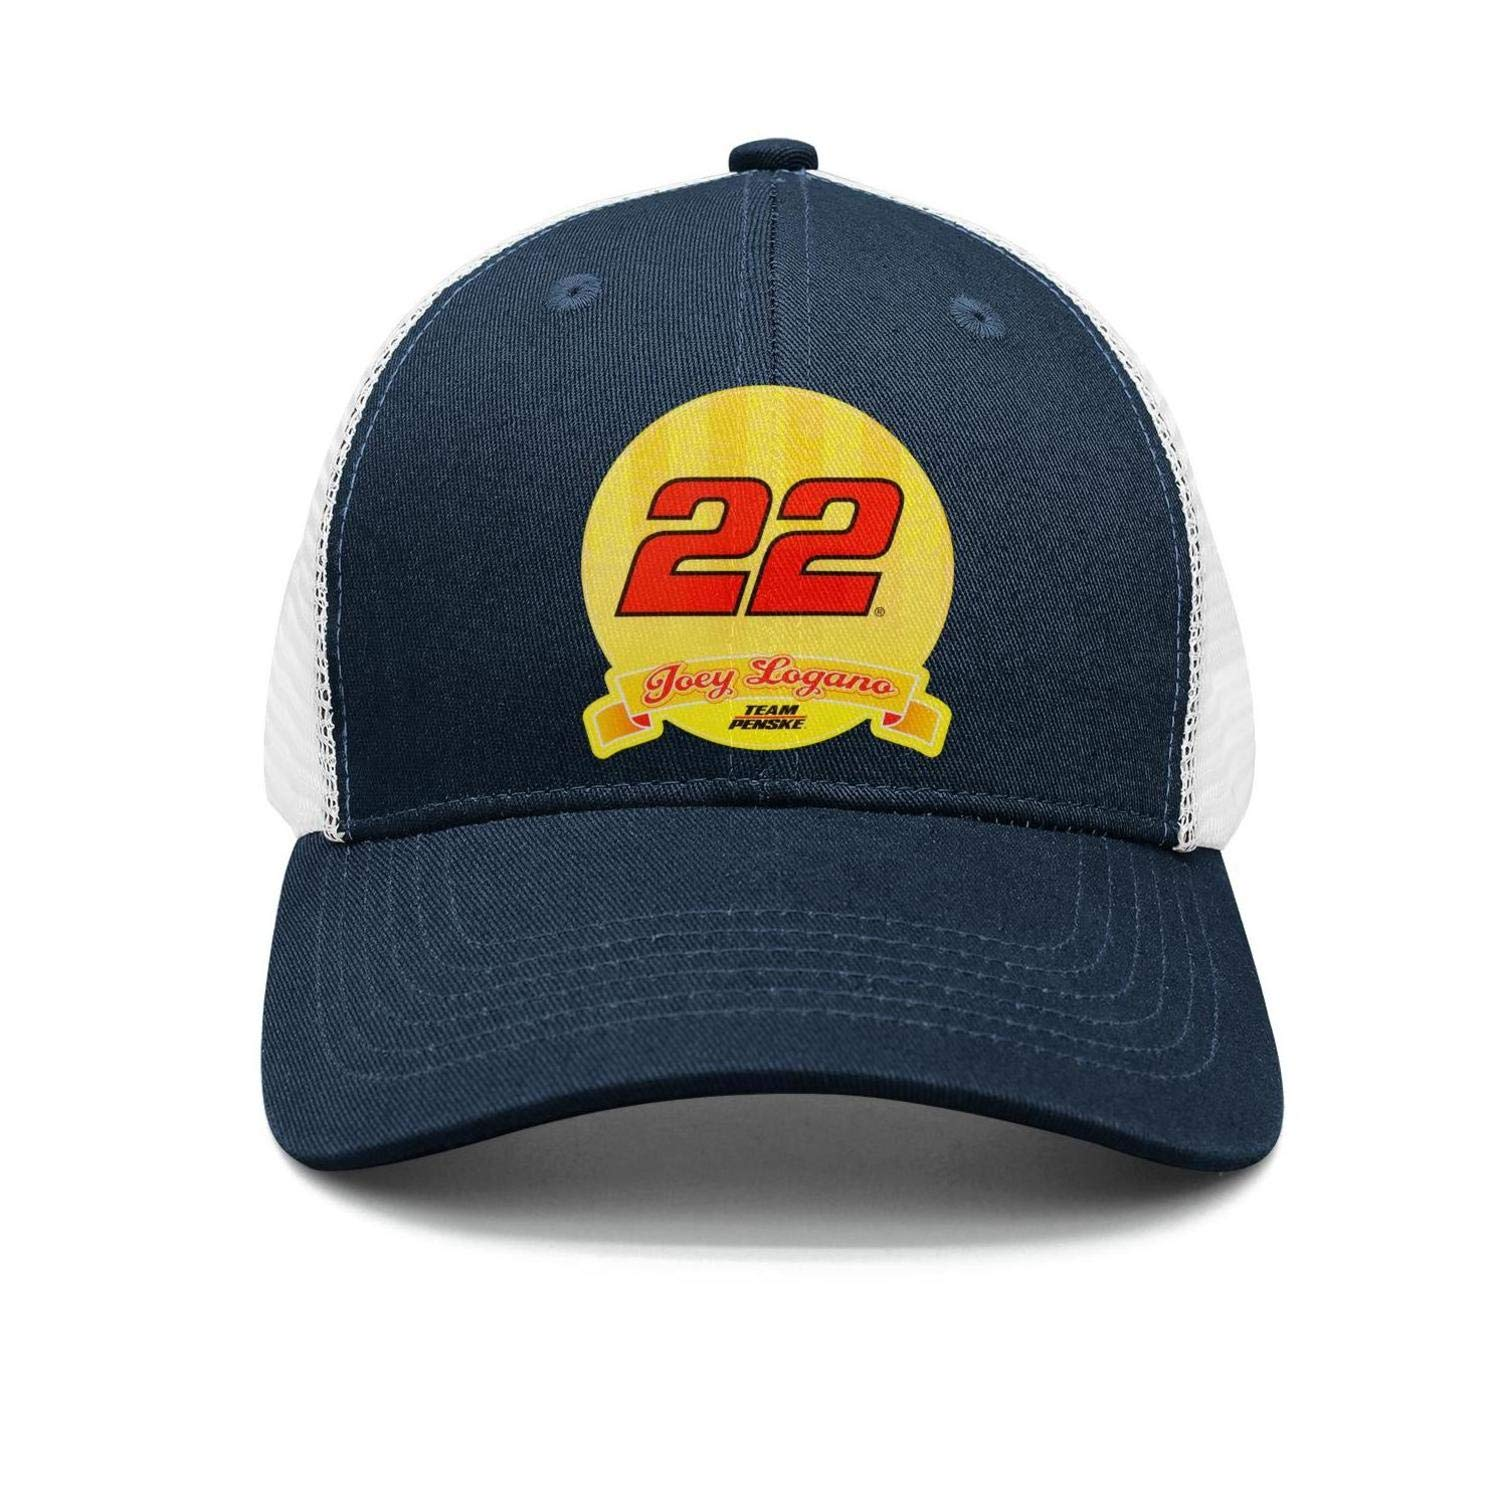 Mens Womens Joey-Logano-2018-Champion-#22-Driver Cap hat Snapback Stylish Travel